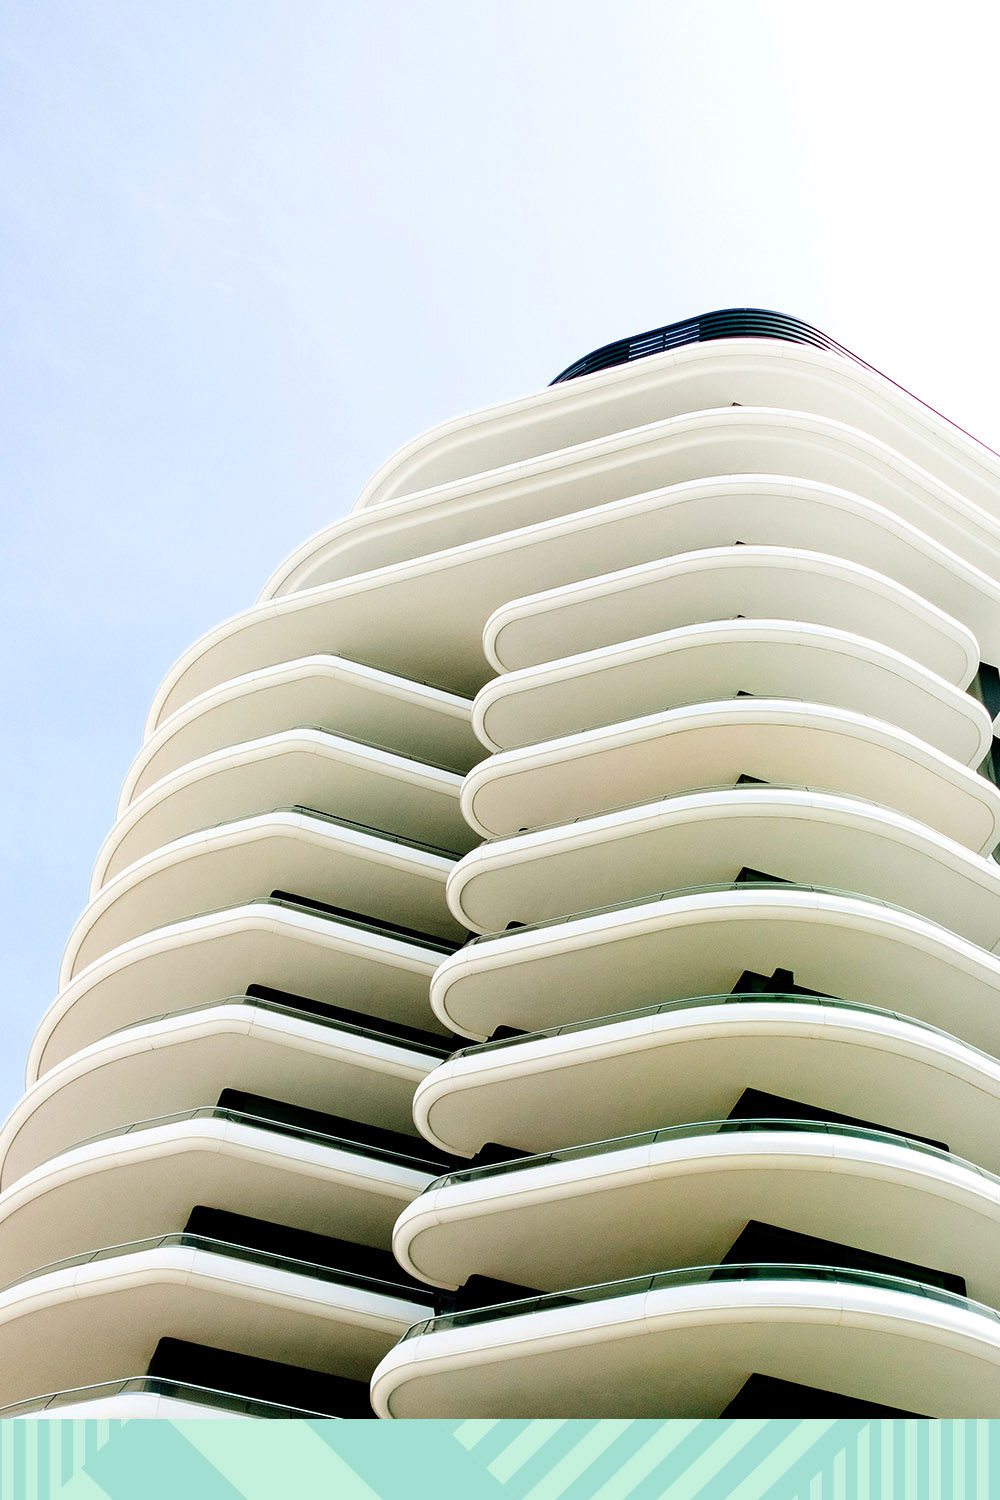 A shot of a building in Miami.